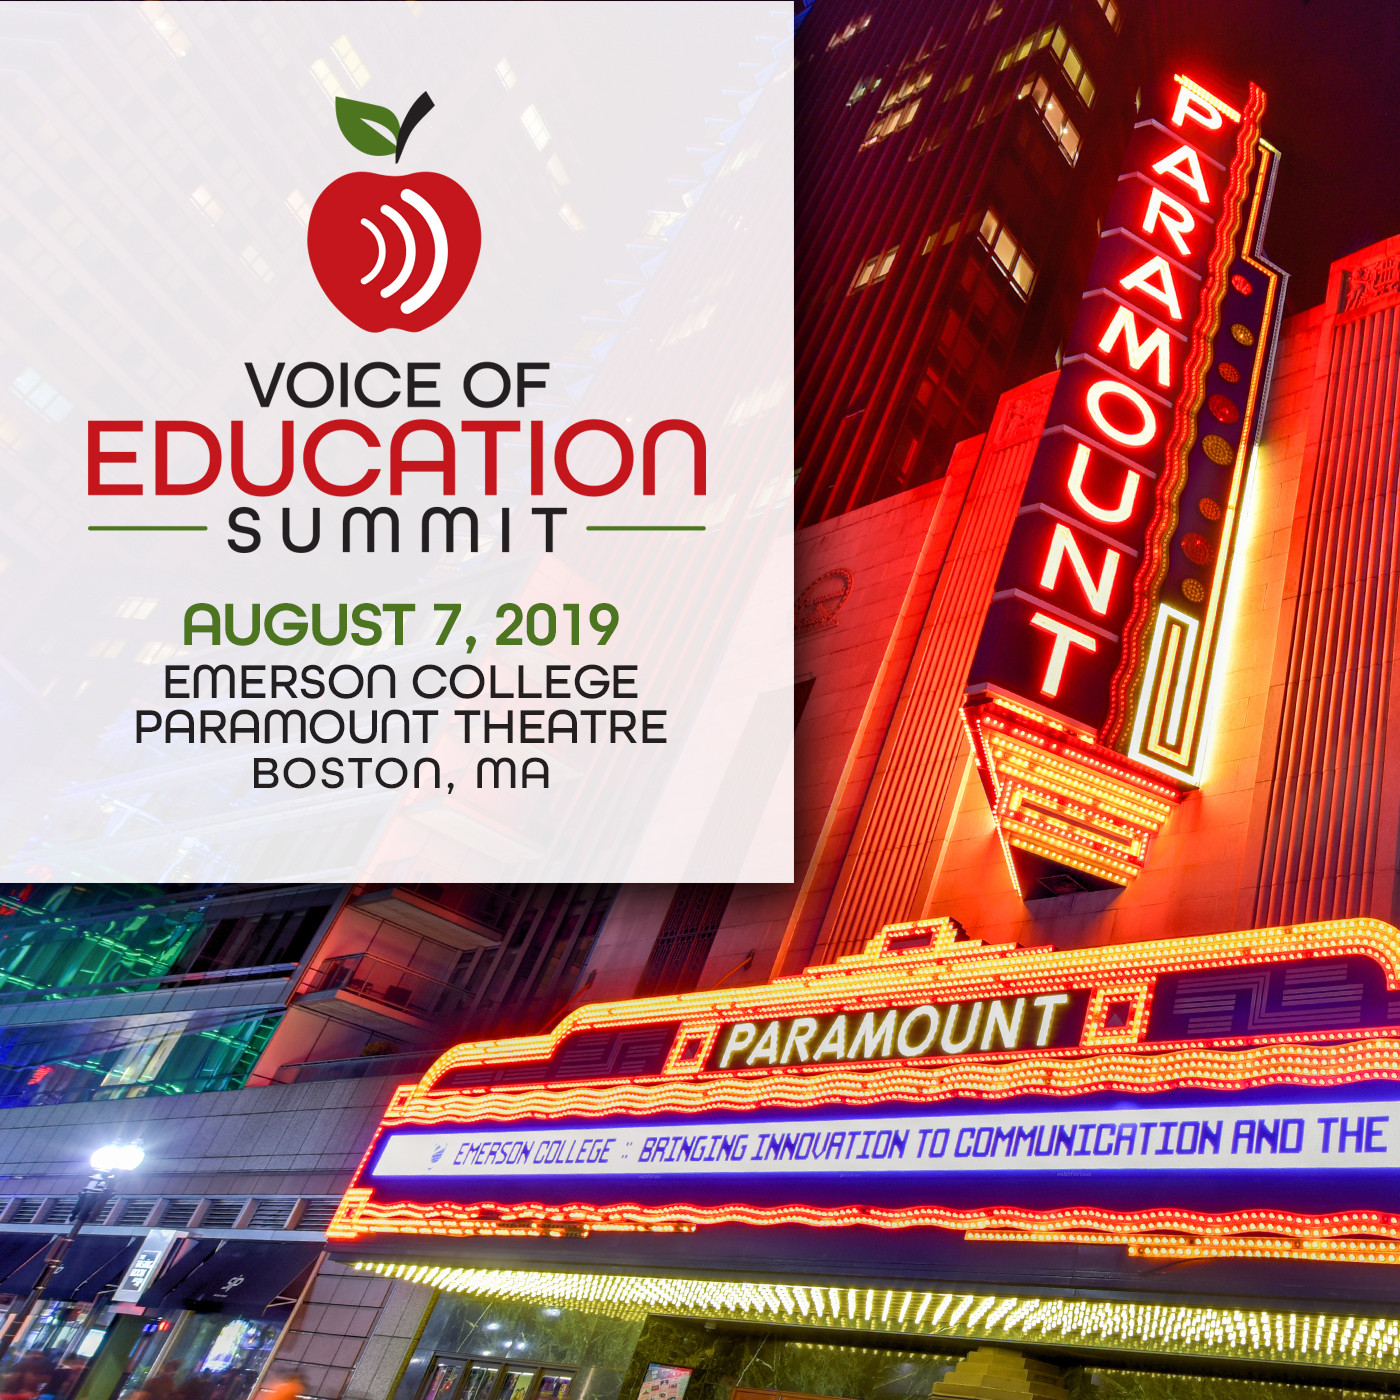 The Voice of Education Summit